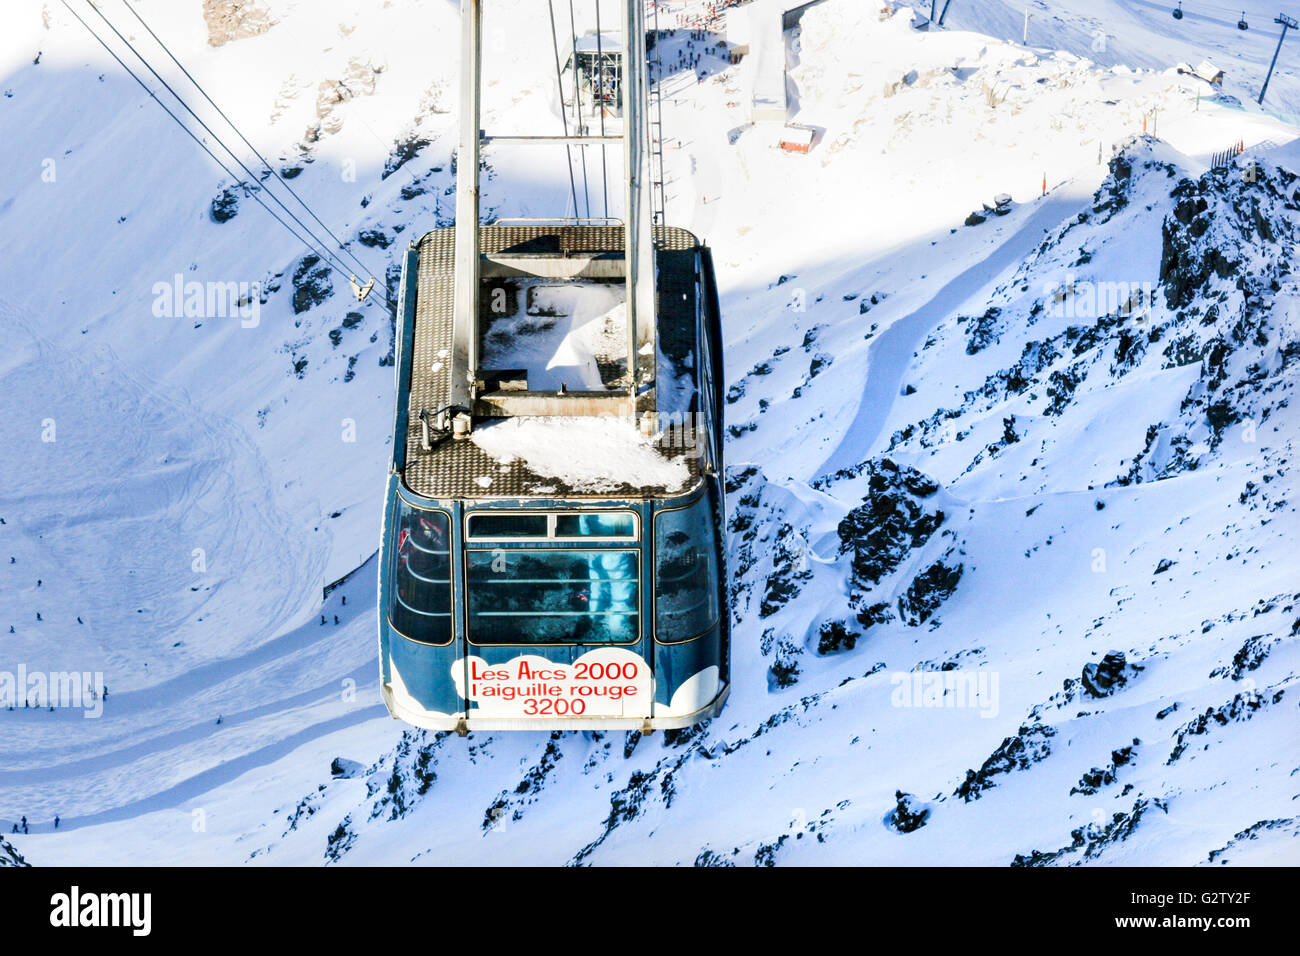 View from L'aguille Rouge (3200m) in Les Arcs 2000 ski area, France - Stock Image